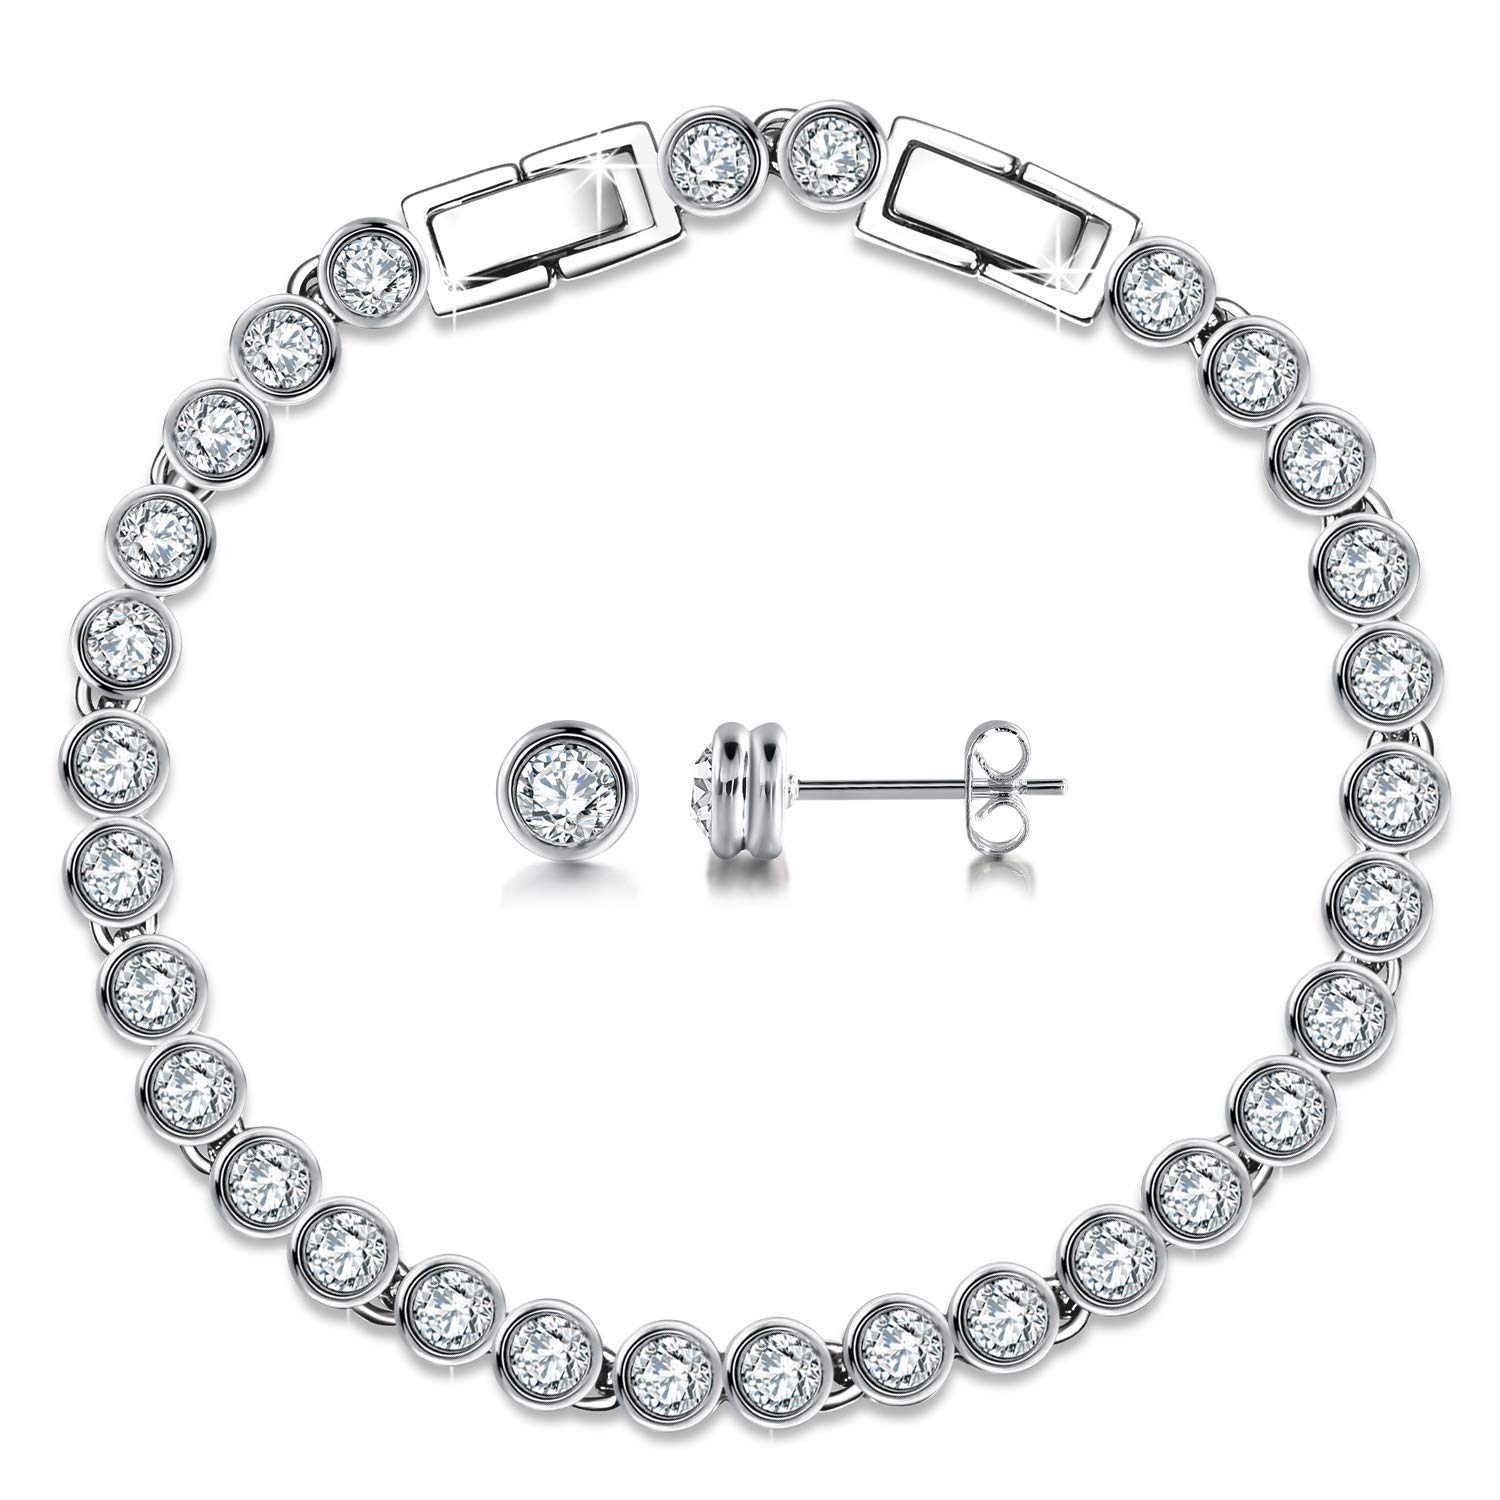 GEORGE · SMITH Classic 925 Sterling Silver Tennis Bracelets Stud Earrings Sets with Swarovski Crystals Jewelry Set Gifts for Women Hypoallergenic